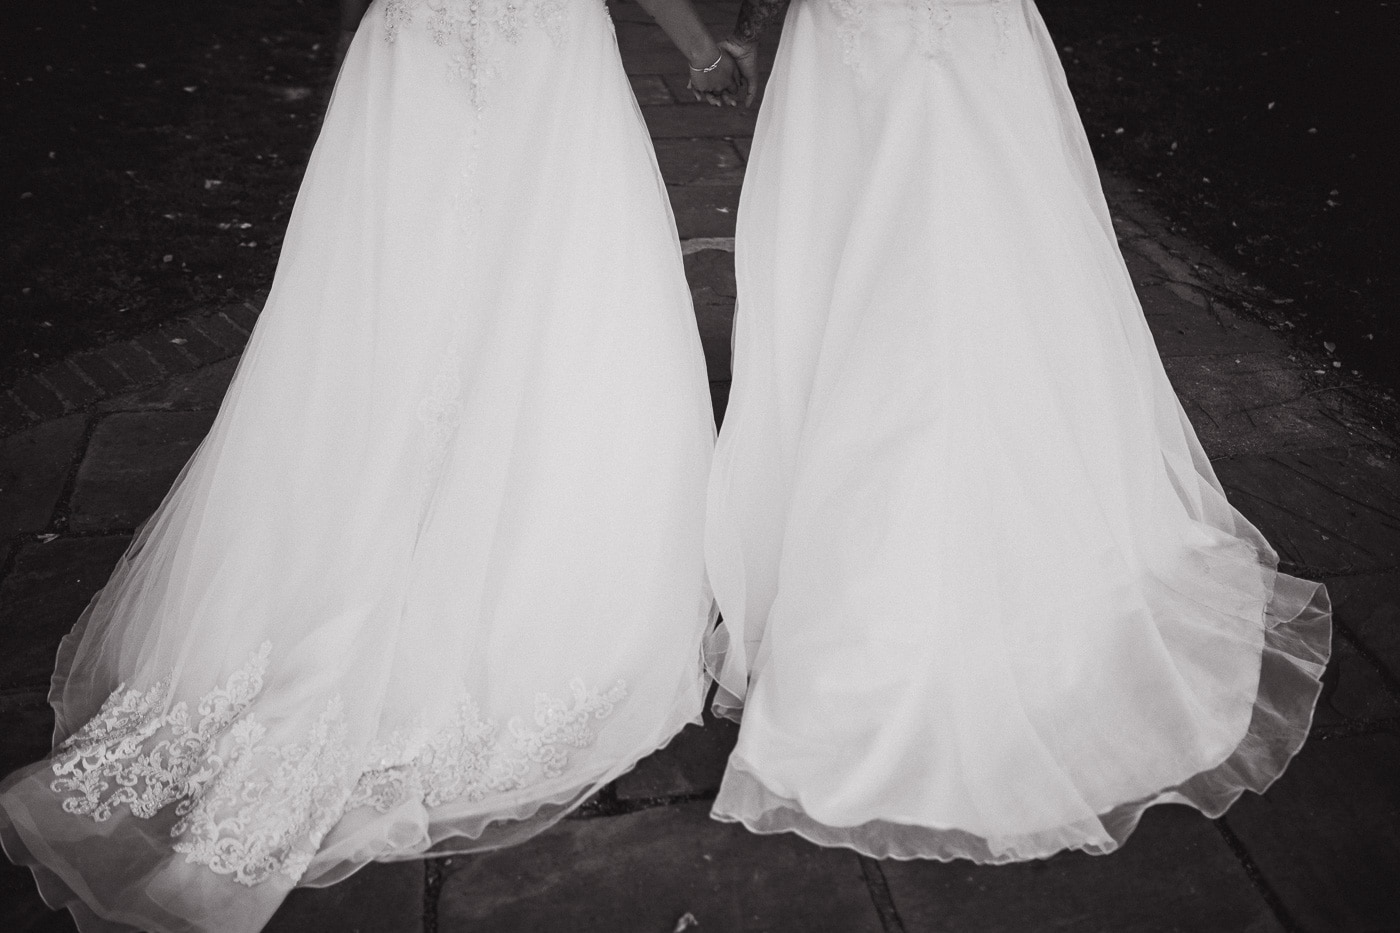 Two bridal gowns for wedding photography by Joshua Wyborn